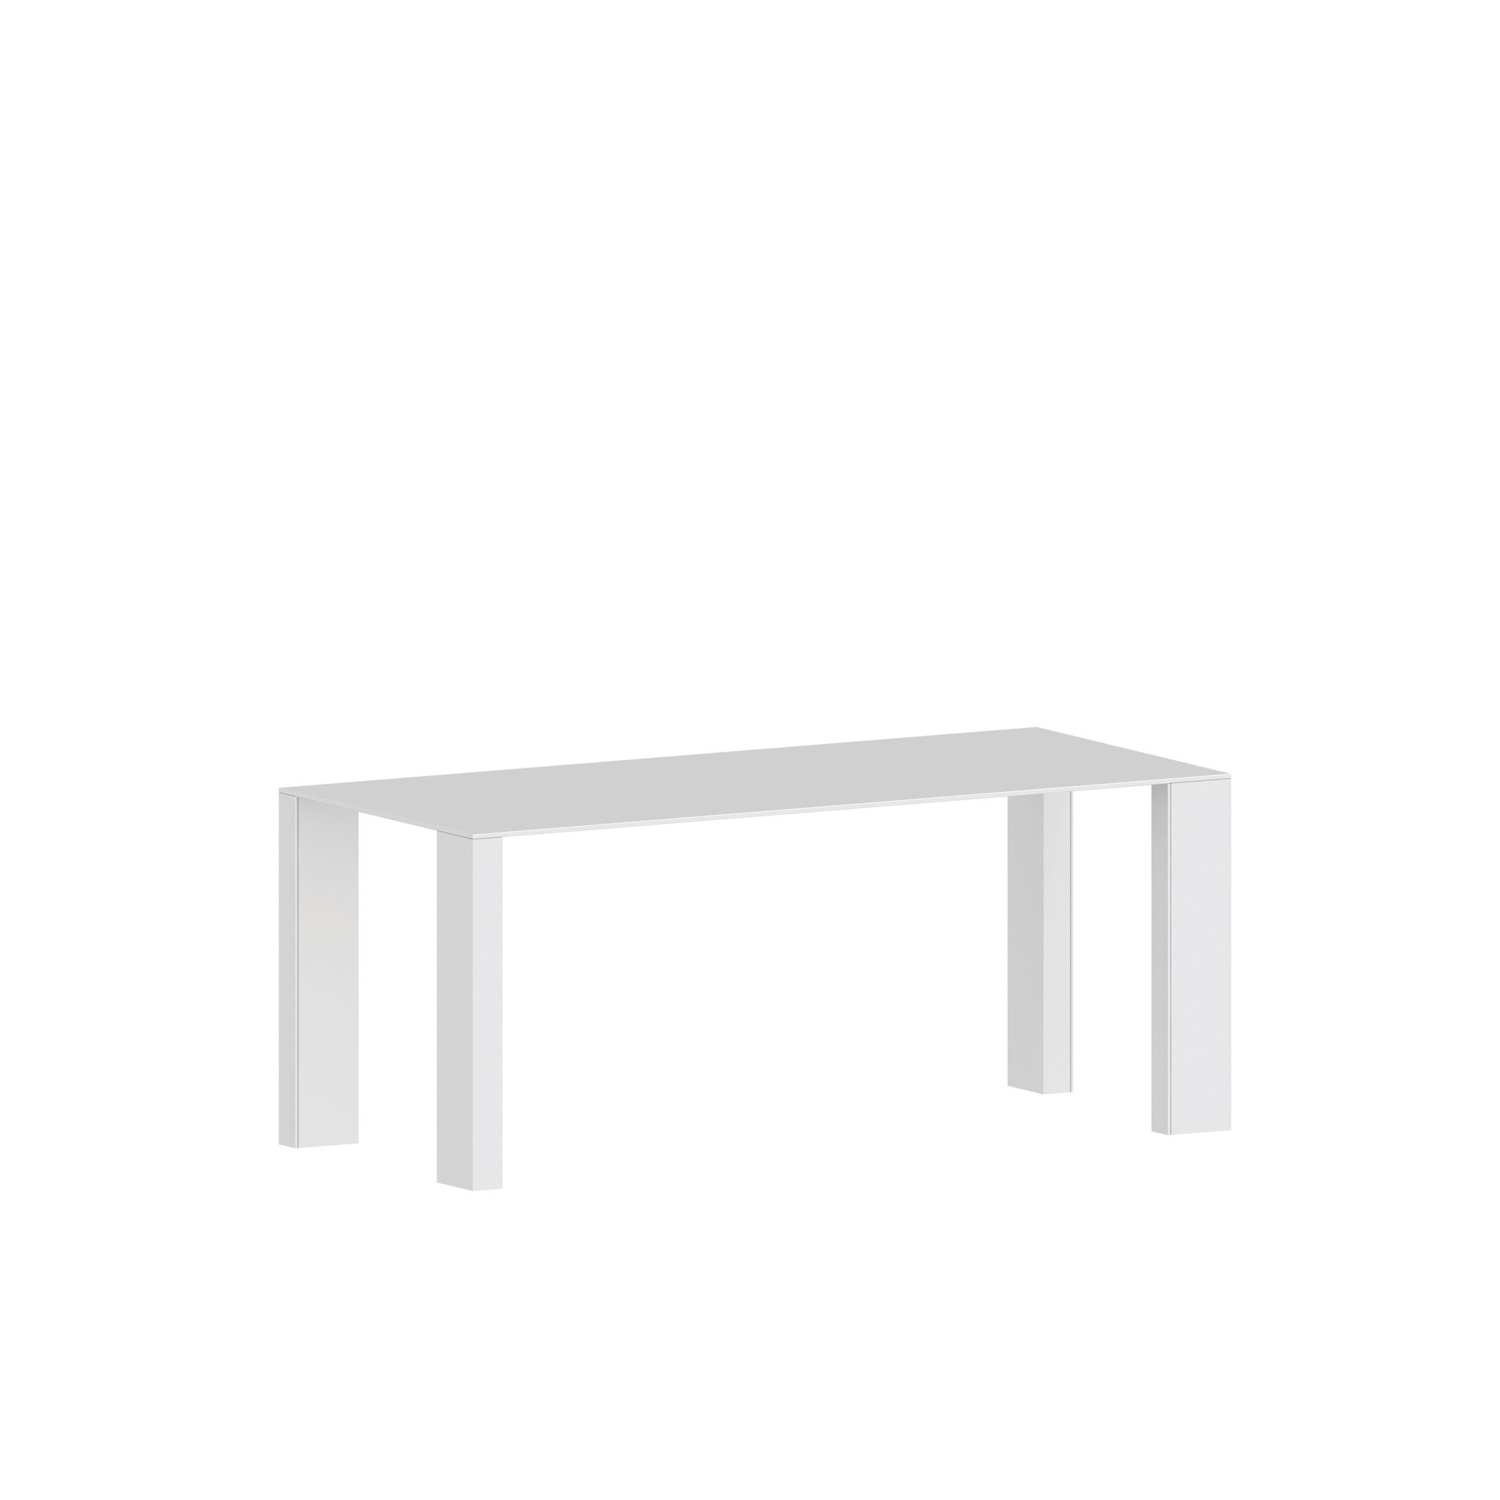 Big Gim Table - The Big Gim Table has a strong yet simplistic structure.  Designed by Franco Ragg the simplicity is its key feature and it means it can fit in various settings.   BIG IRONY products have intentionally not been painted because it is the surface irregularity which makes them so special. The daily use will form stains forming a patina which renders the surface even more beautiful. When delivered the surface BIG IRONY has undergone a final treatment with beeswax. Please clean it first with a dry rag in order to remove traces of oxidation and wax. To clean it use a non aggressive/soft detergent as it would be wood. Twice a year, we suggest to impregnate the surface with beeswax, removing it after one night as described above.  | Matter of Stuff